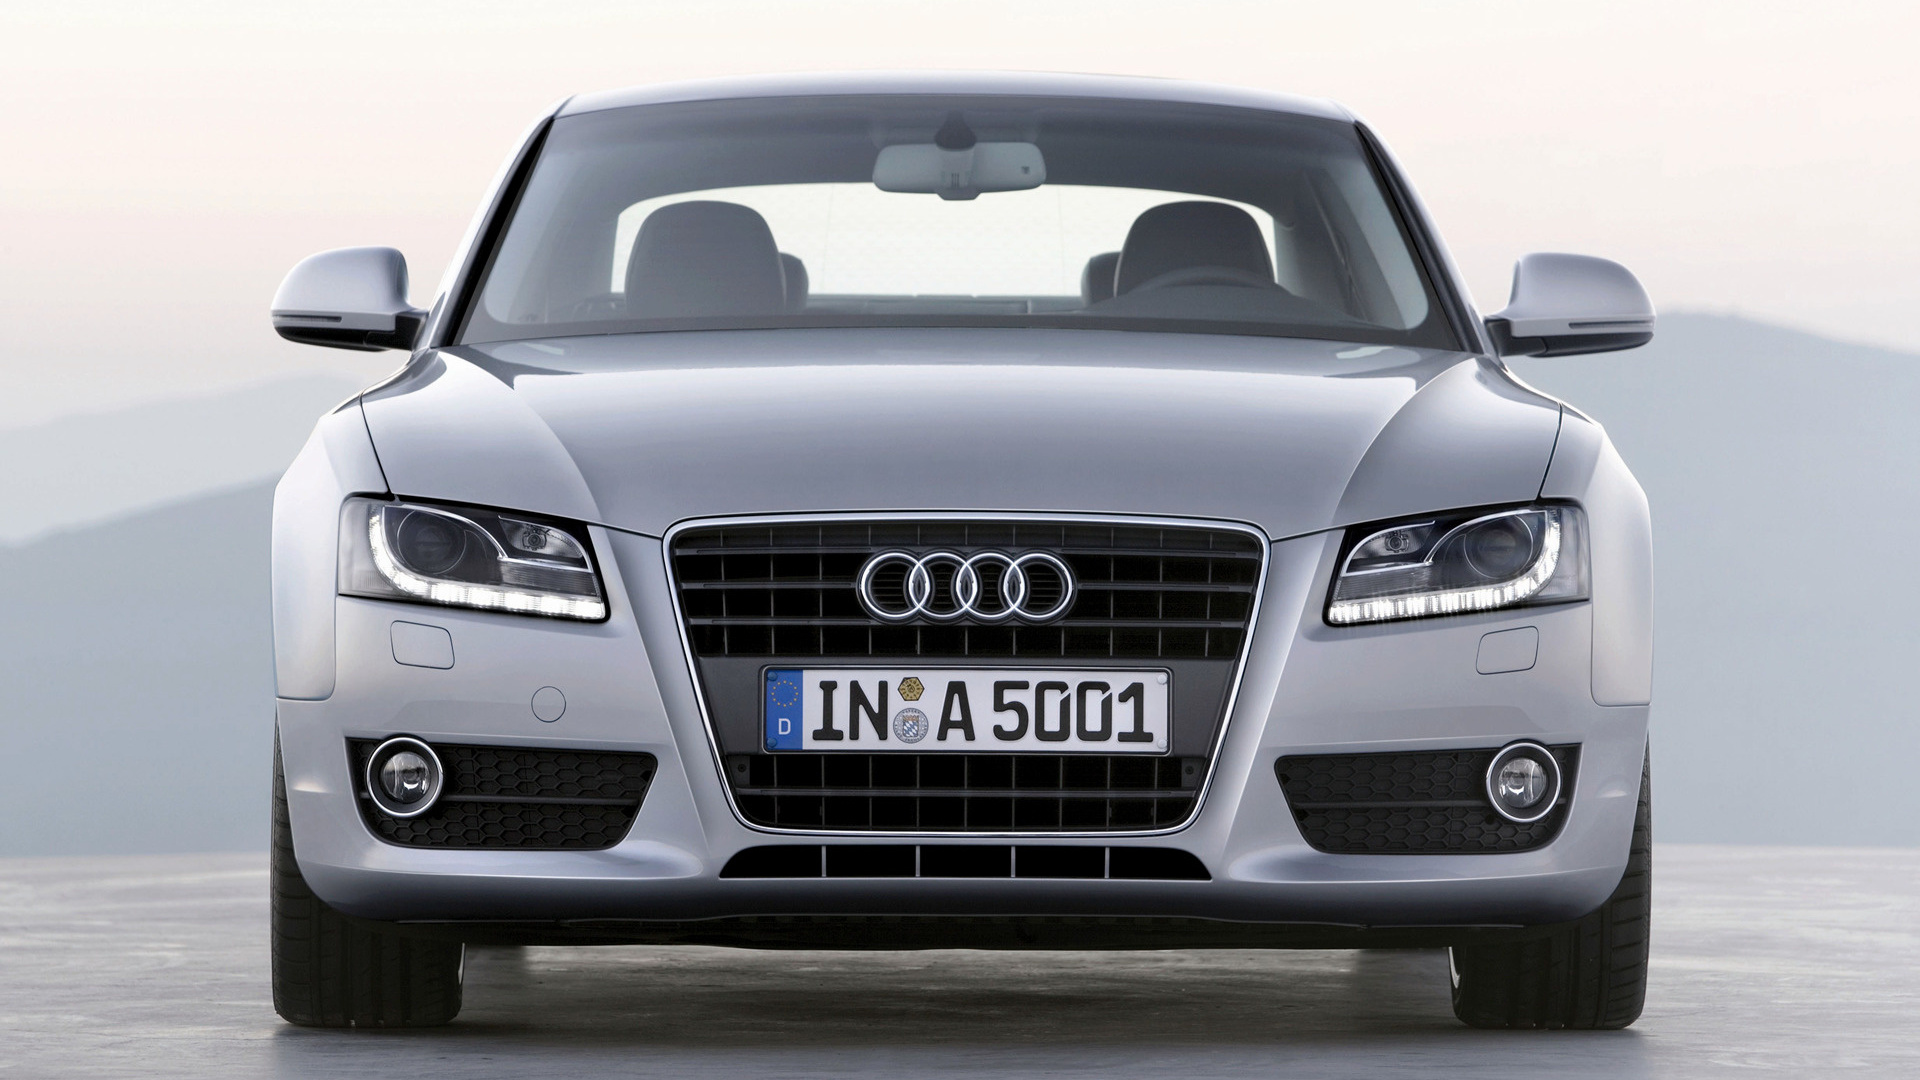 2007 audi a5 coupe wallpapers and hd images car pixel. Black Bedroom Furniture Sets. Home Design Ideas